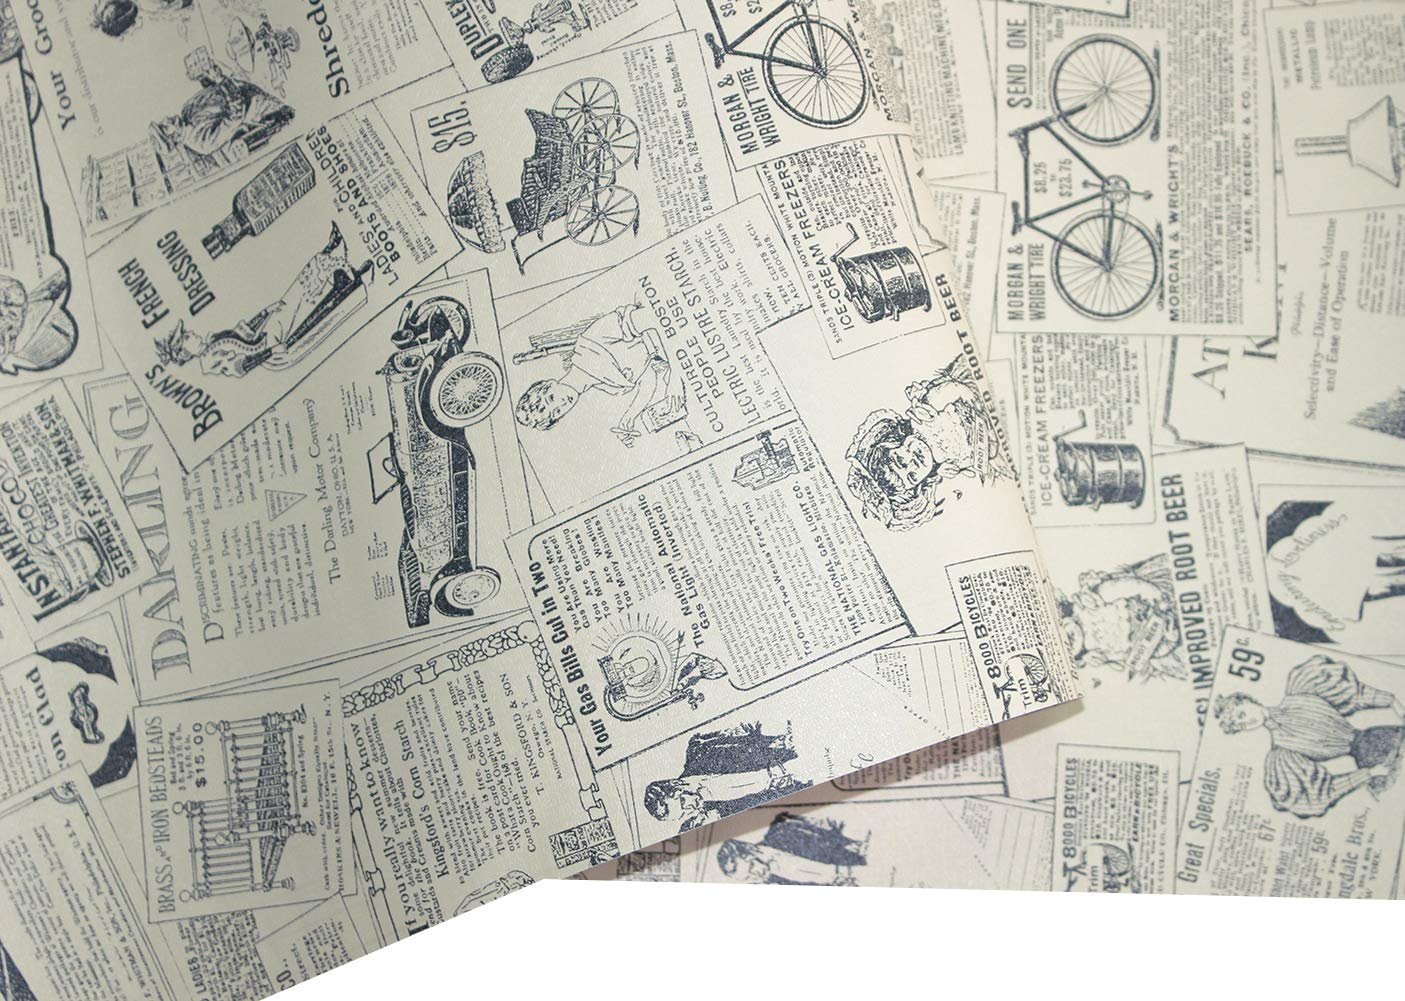 HaokHome 63275 Thick Material Vintage Newspaper Peel & Stick Wallpaper 17.7'' x 19.7ft Beige/Black Self Adhesive Contact Paper